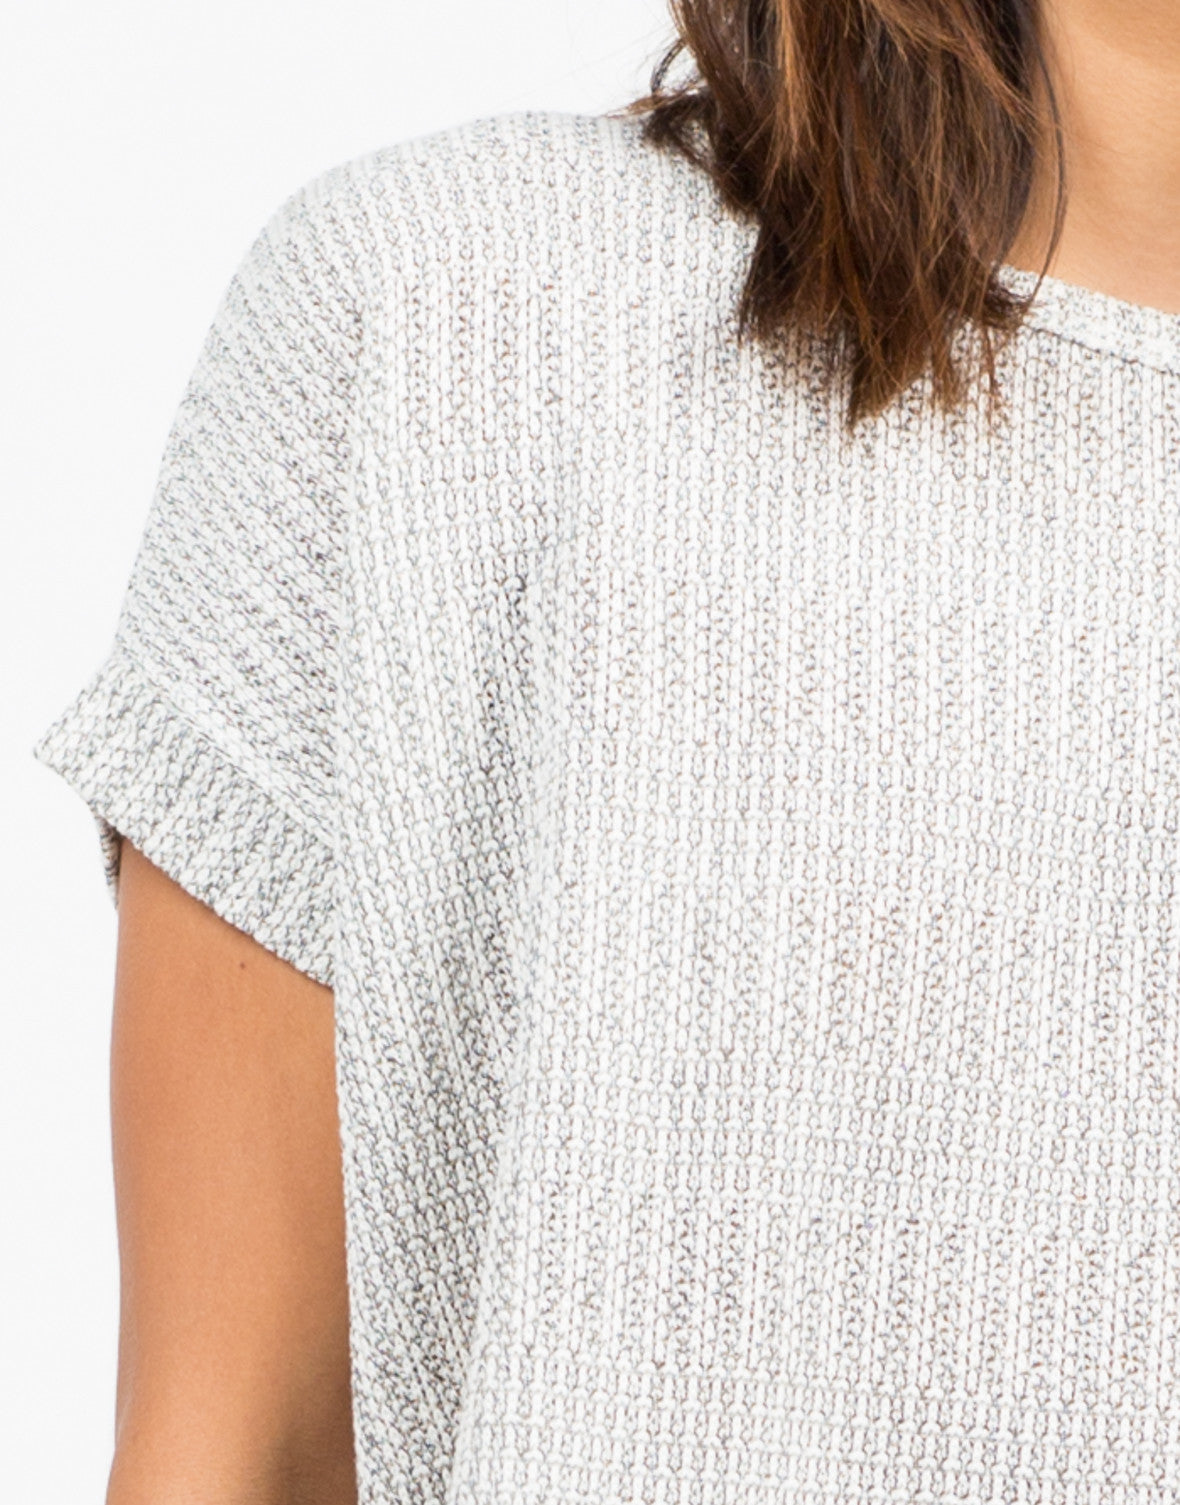 Detail of Boxy Sweater Top